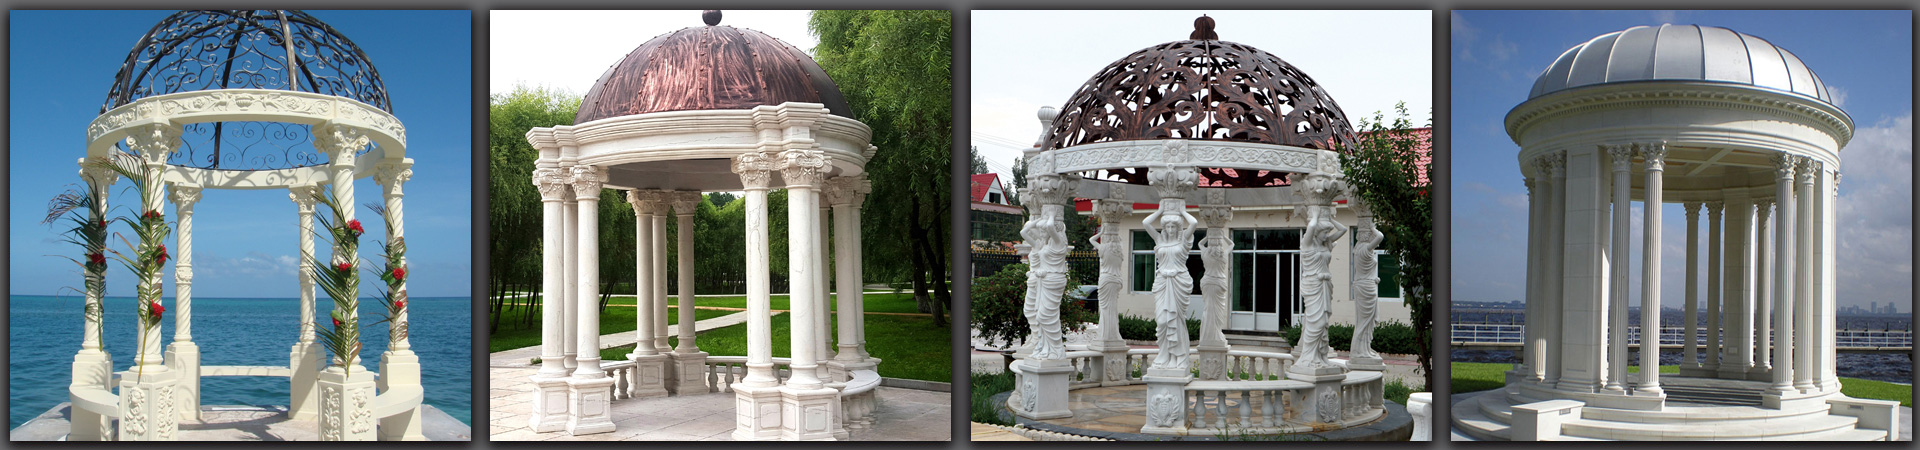 stone gazebo for wedding